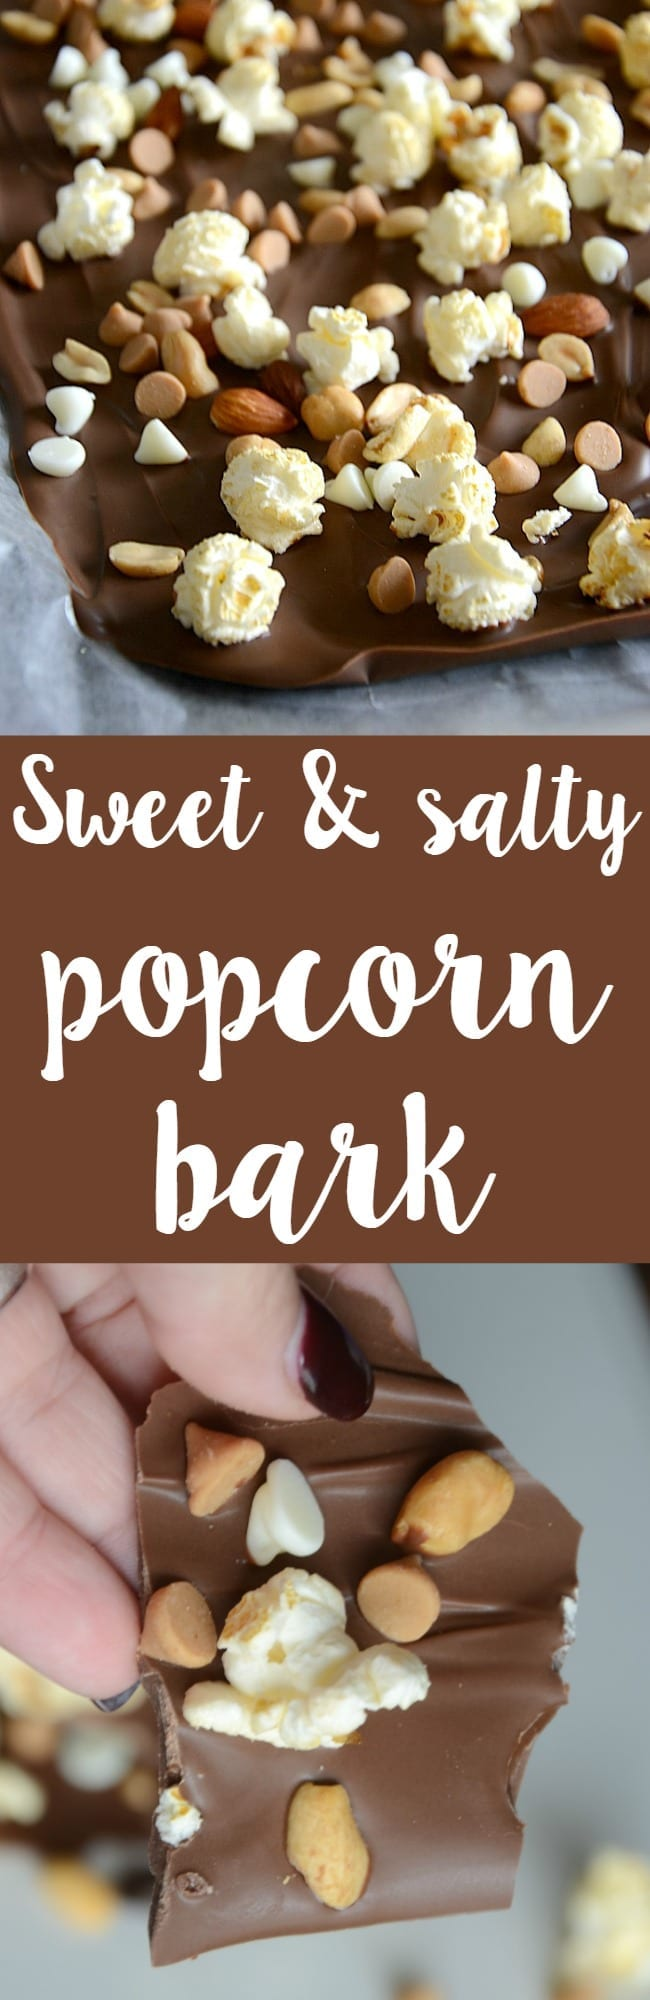 Delicious sweet and salty popcorn bark recipe!  This is so easy to toss together and everyone will love the sweetsalty combo!